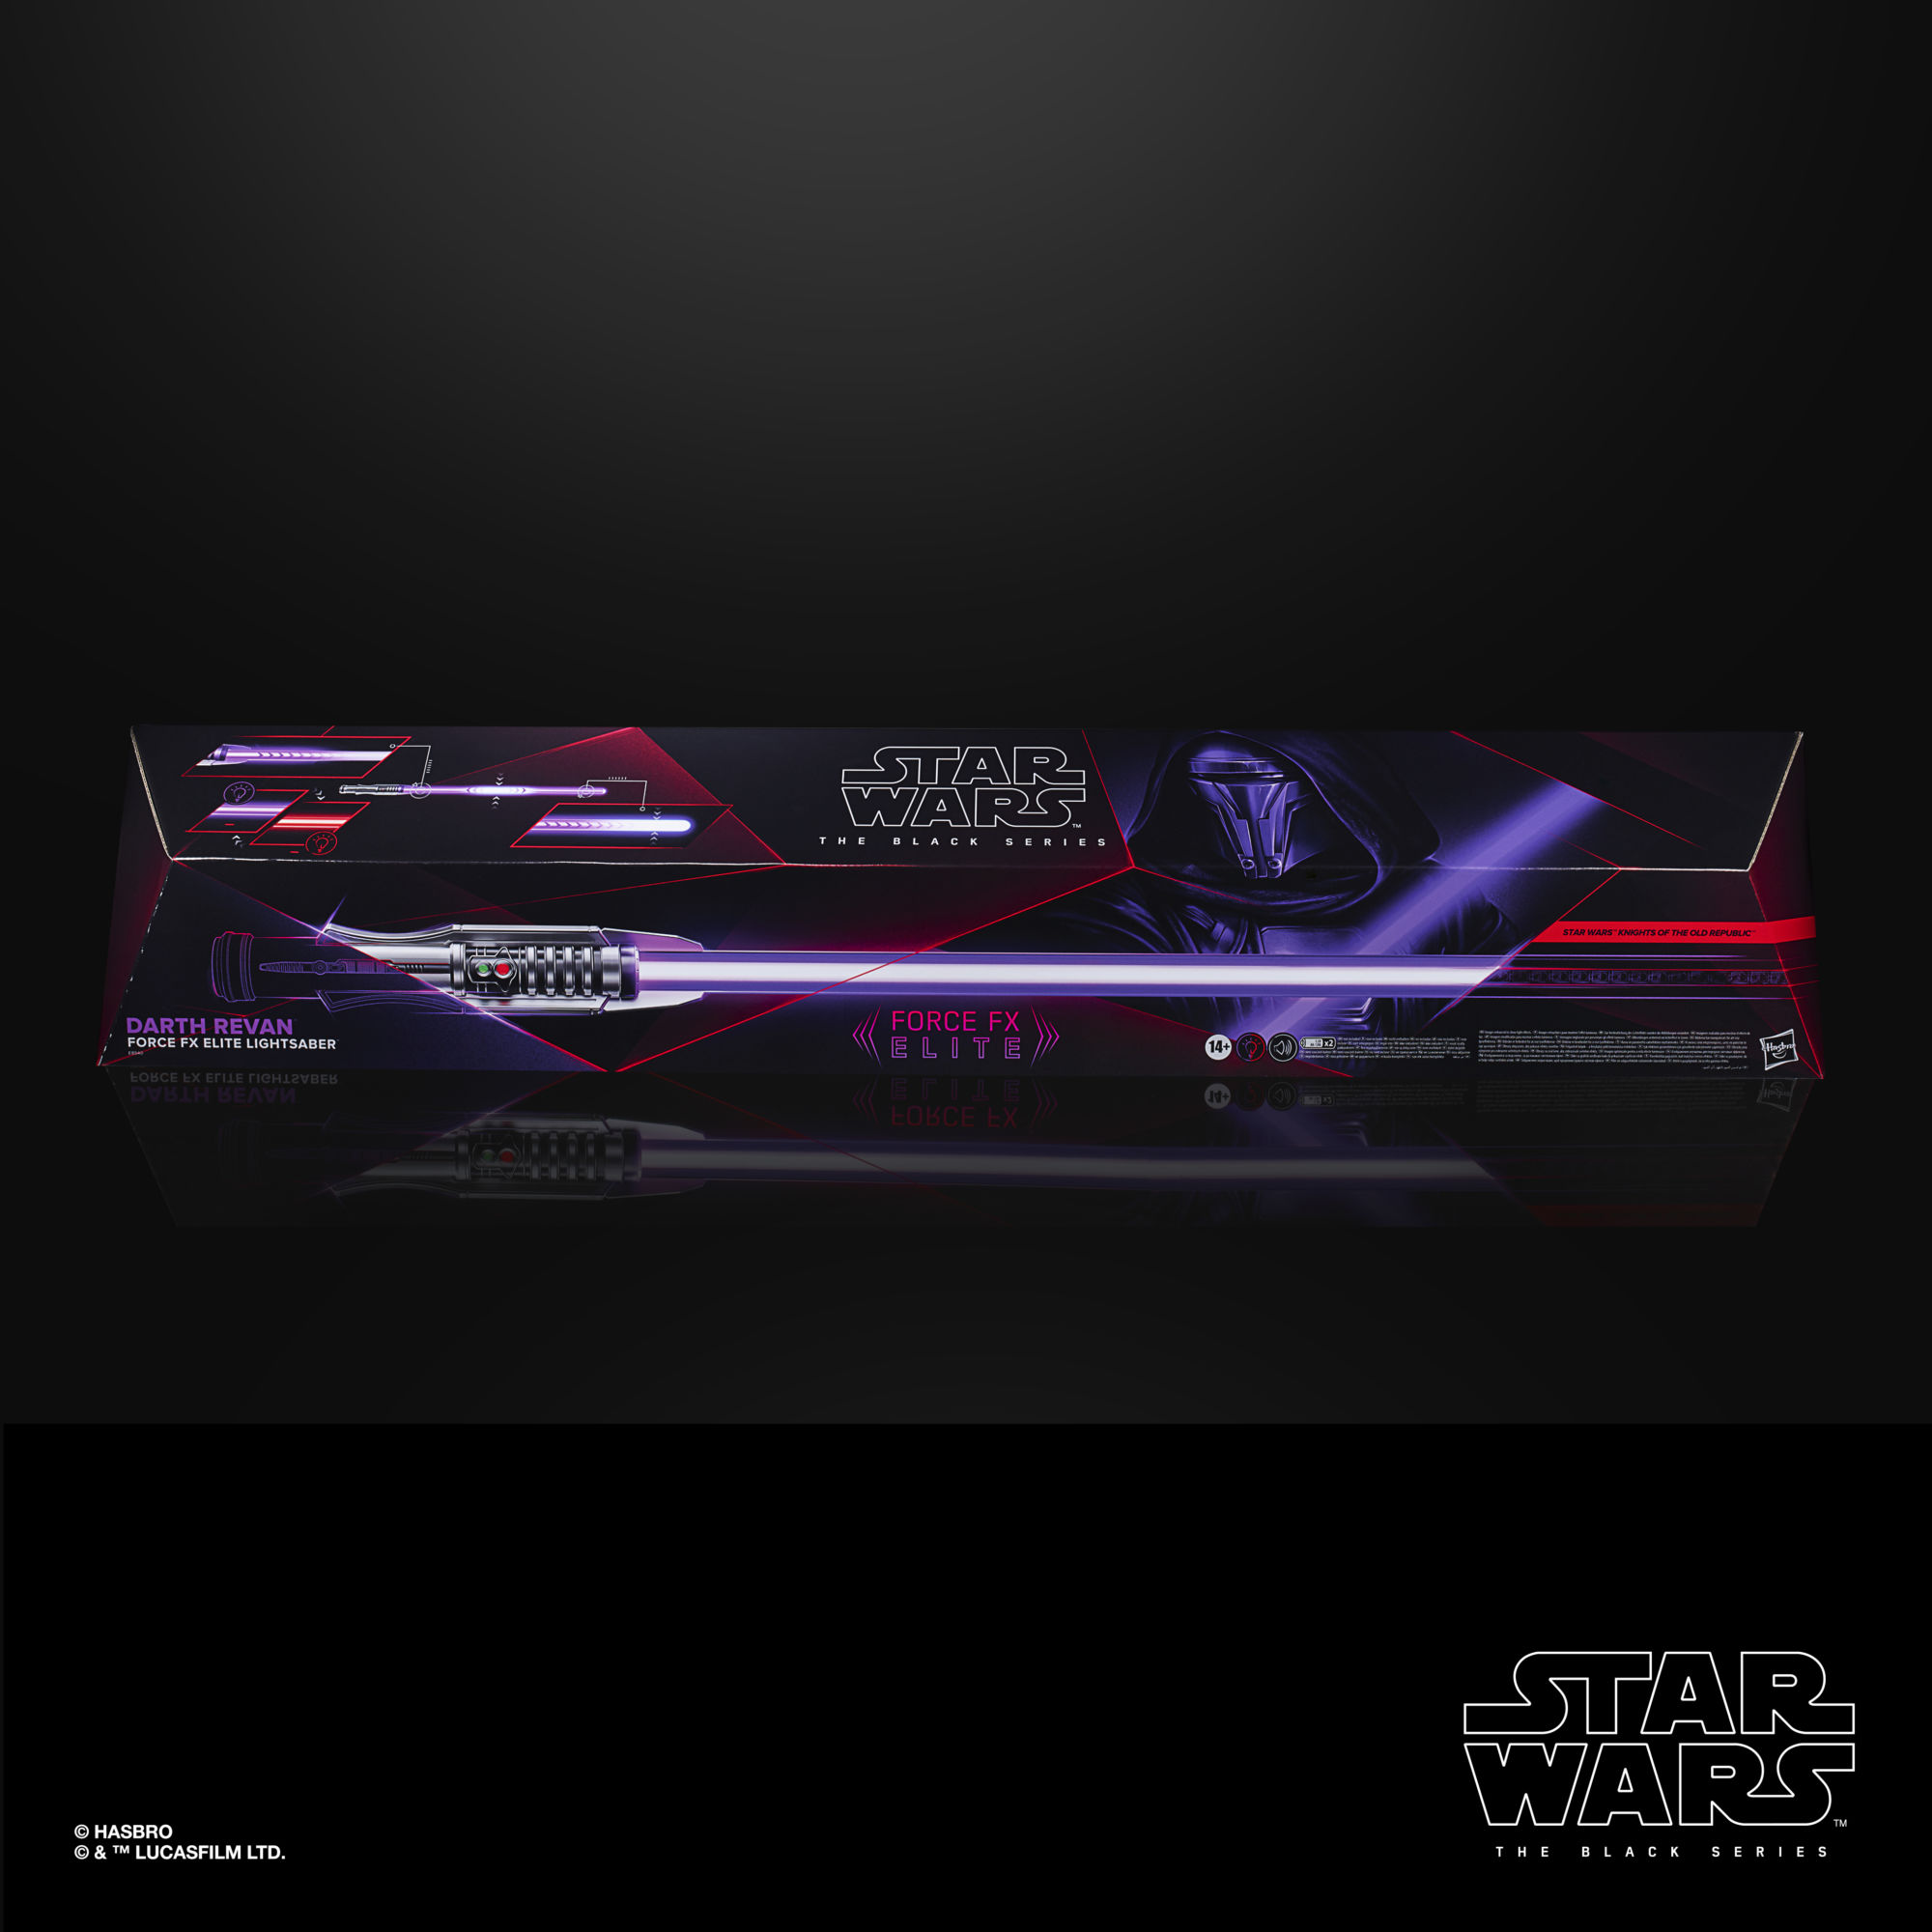 New Ancient Star Wars Lightsabers are Coming Soon from Hasbro